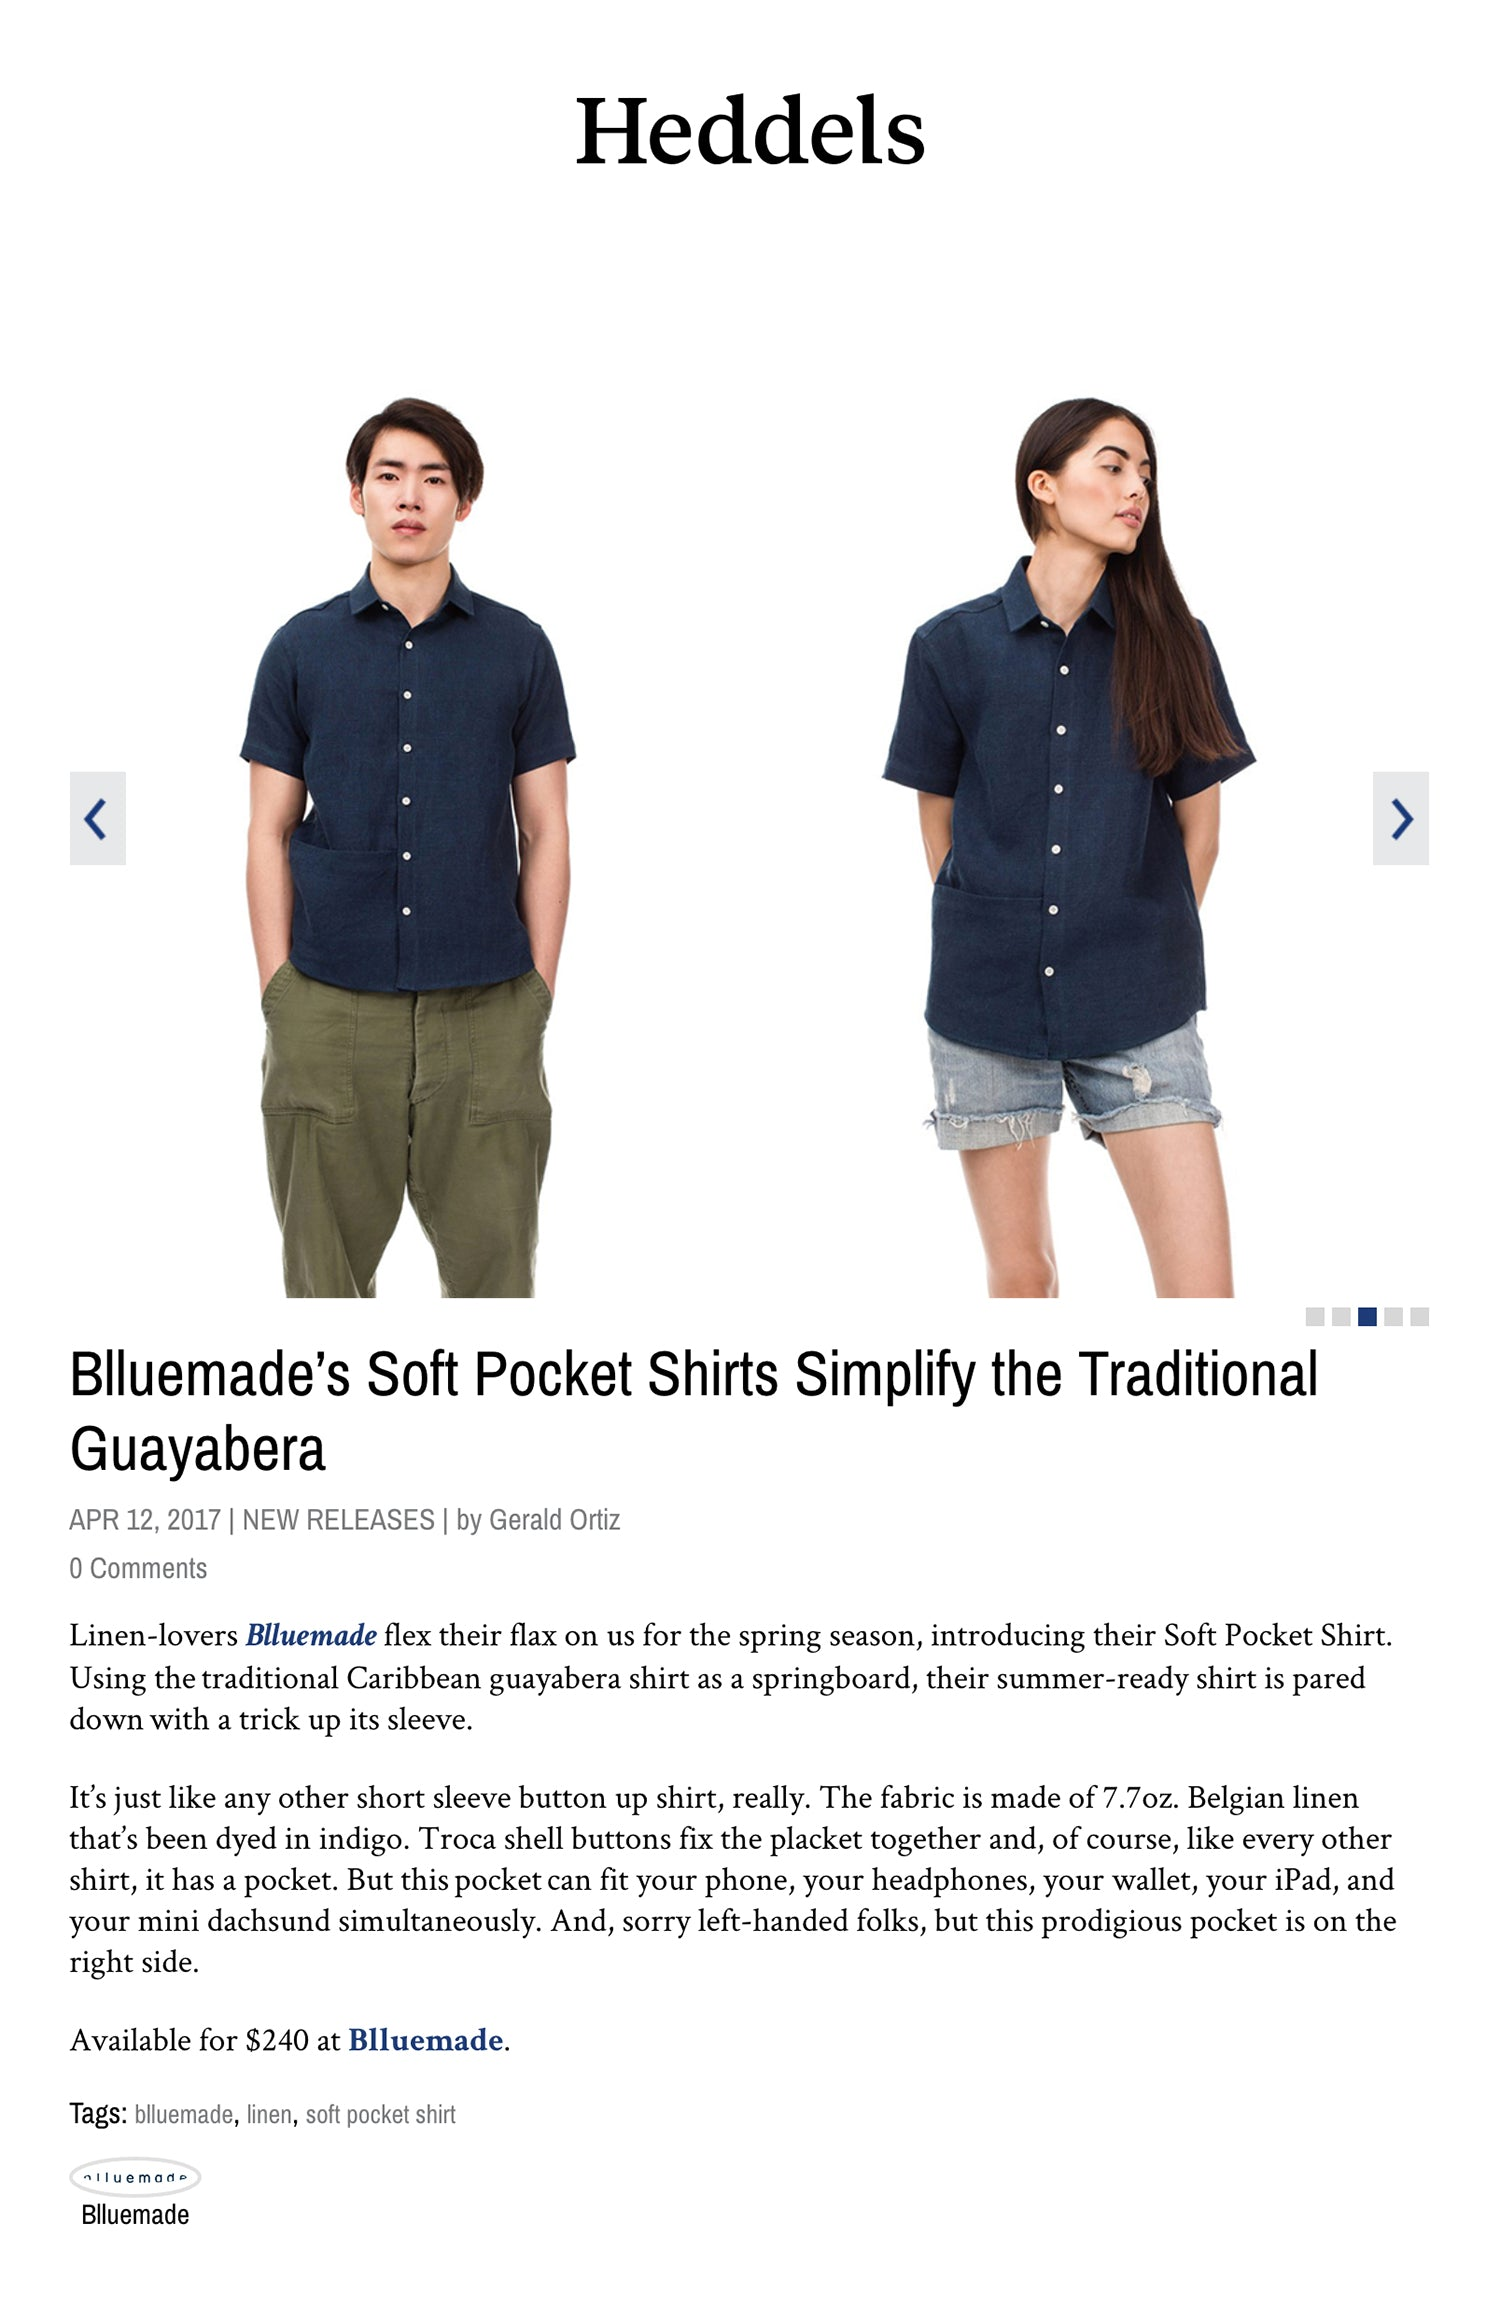 Heddels Article Blluemade's Soft Pocket Shirts Simplify the Traditional Guayabera